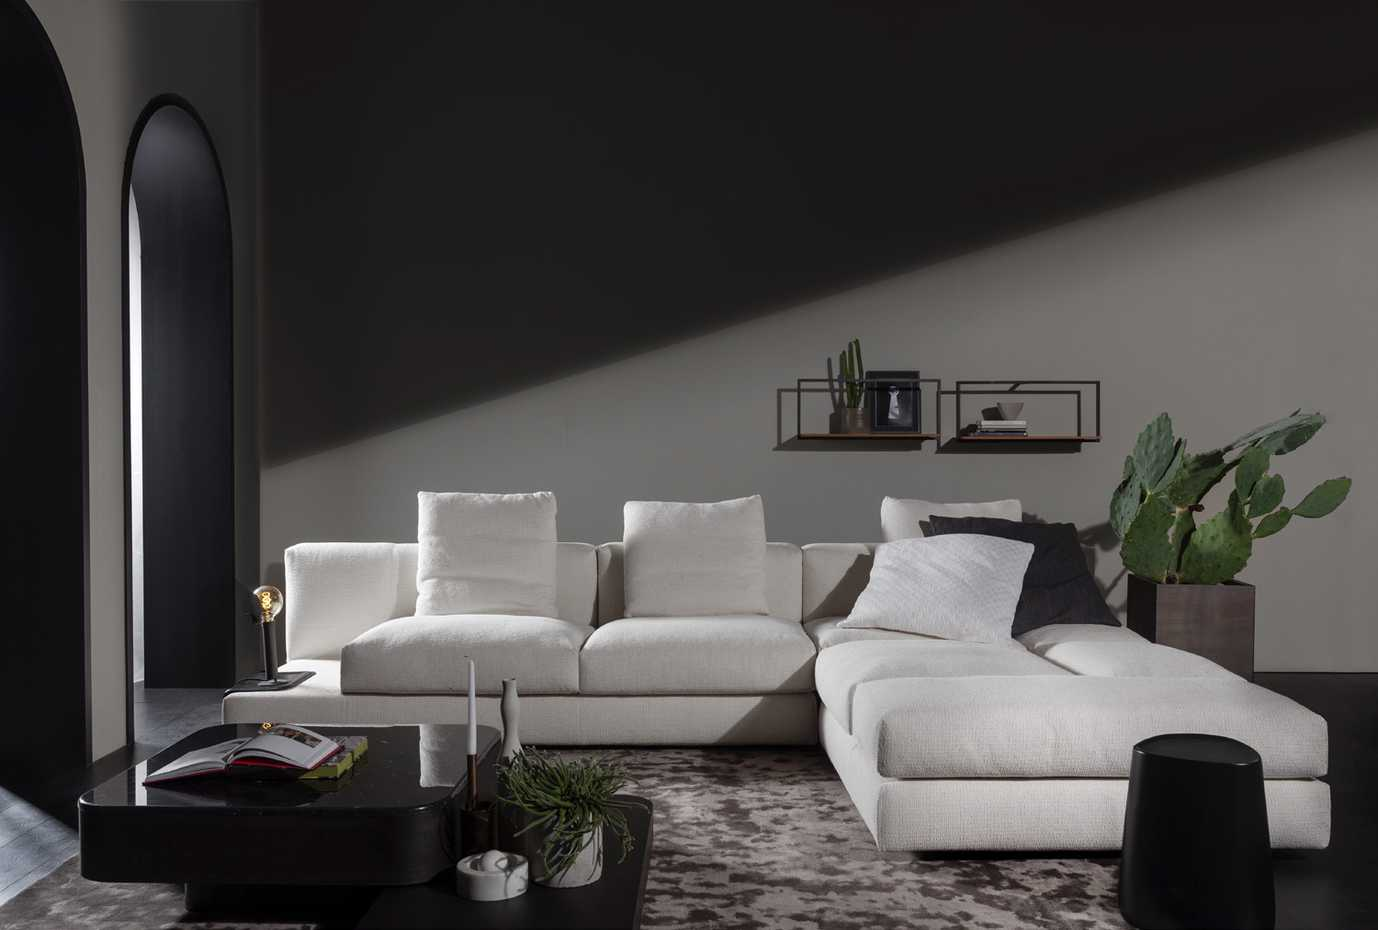 Evo by Vibieffe product image 3